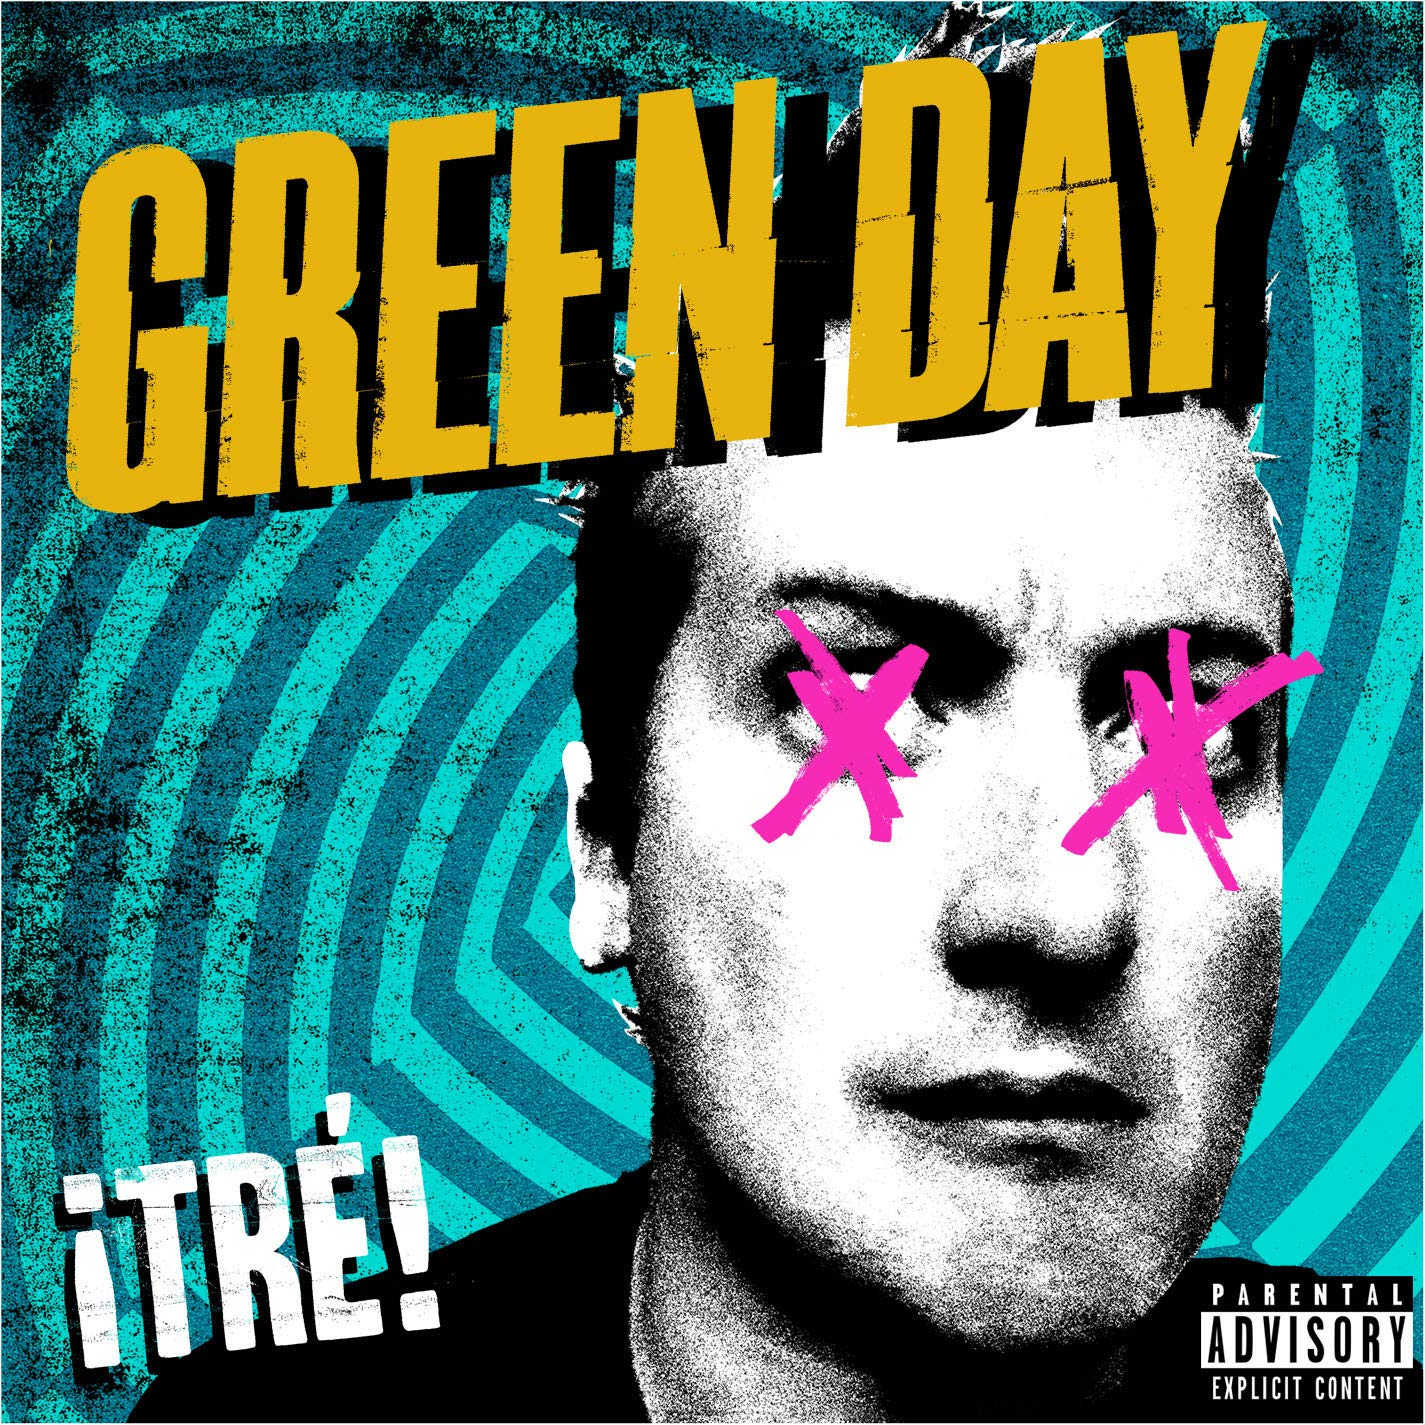 """It's so close to """"Bring It On Home To Me"""" that Green Day share a writing credit with the late Sam Cooke. Hey, if you're going to """"borrow,"""" borrow from the best. It's one of the best songs from the 'UNO'/'DOS'/'TRE' era, which would have benefitted from some editing. The highlights would have made a solid album."""